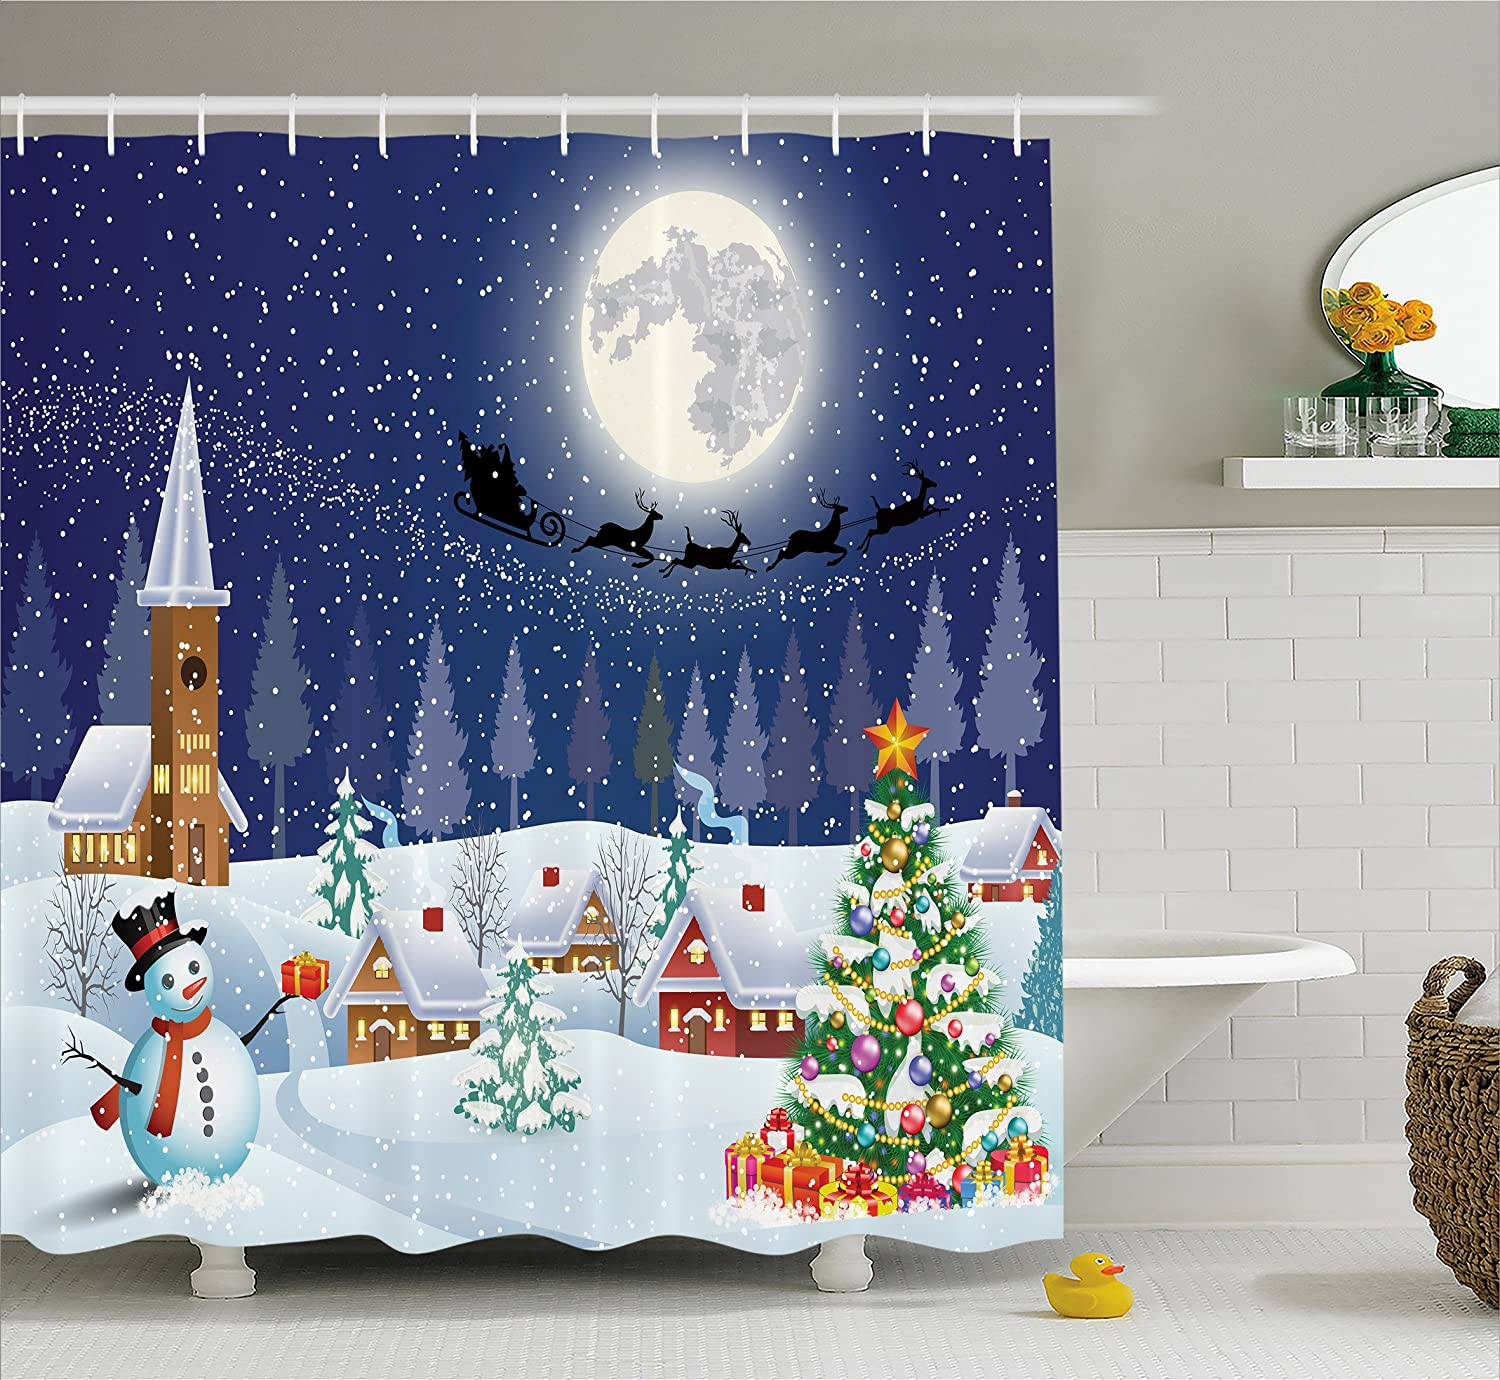 Ambesonne Christmas Shower Curtain, Winter Season Snowman Xmas Tree Santa Sleigh Moon Present Boxes Snow and Stars, Fabric Bathroom Decor Set with Hooks, 70 Inches, Blue White